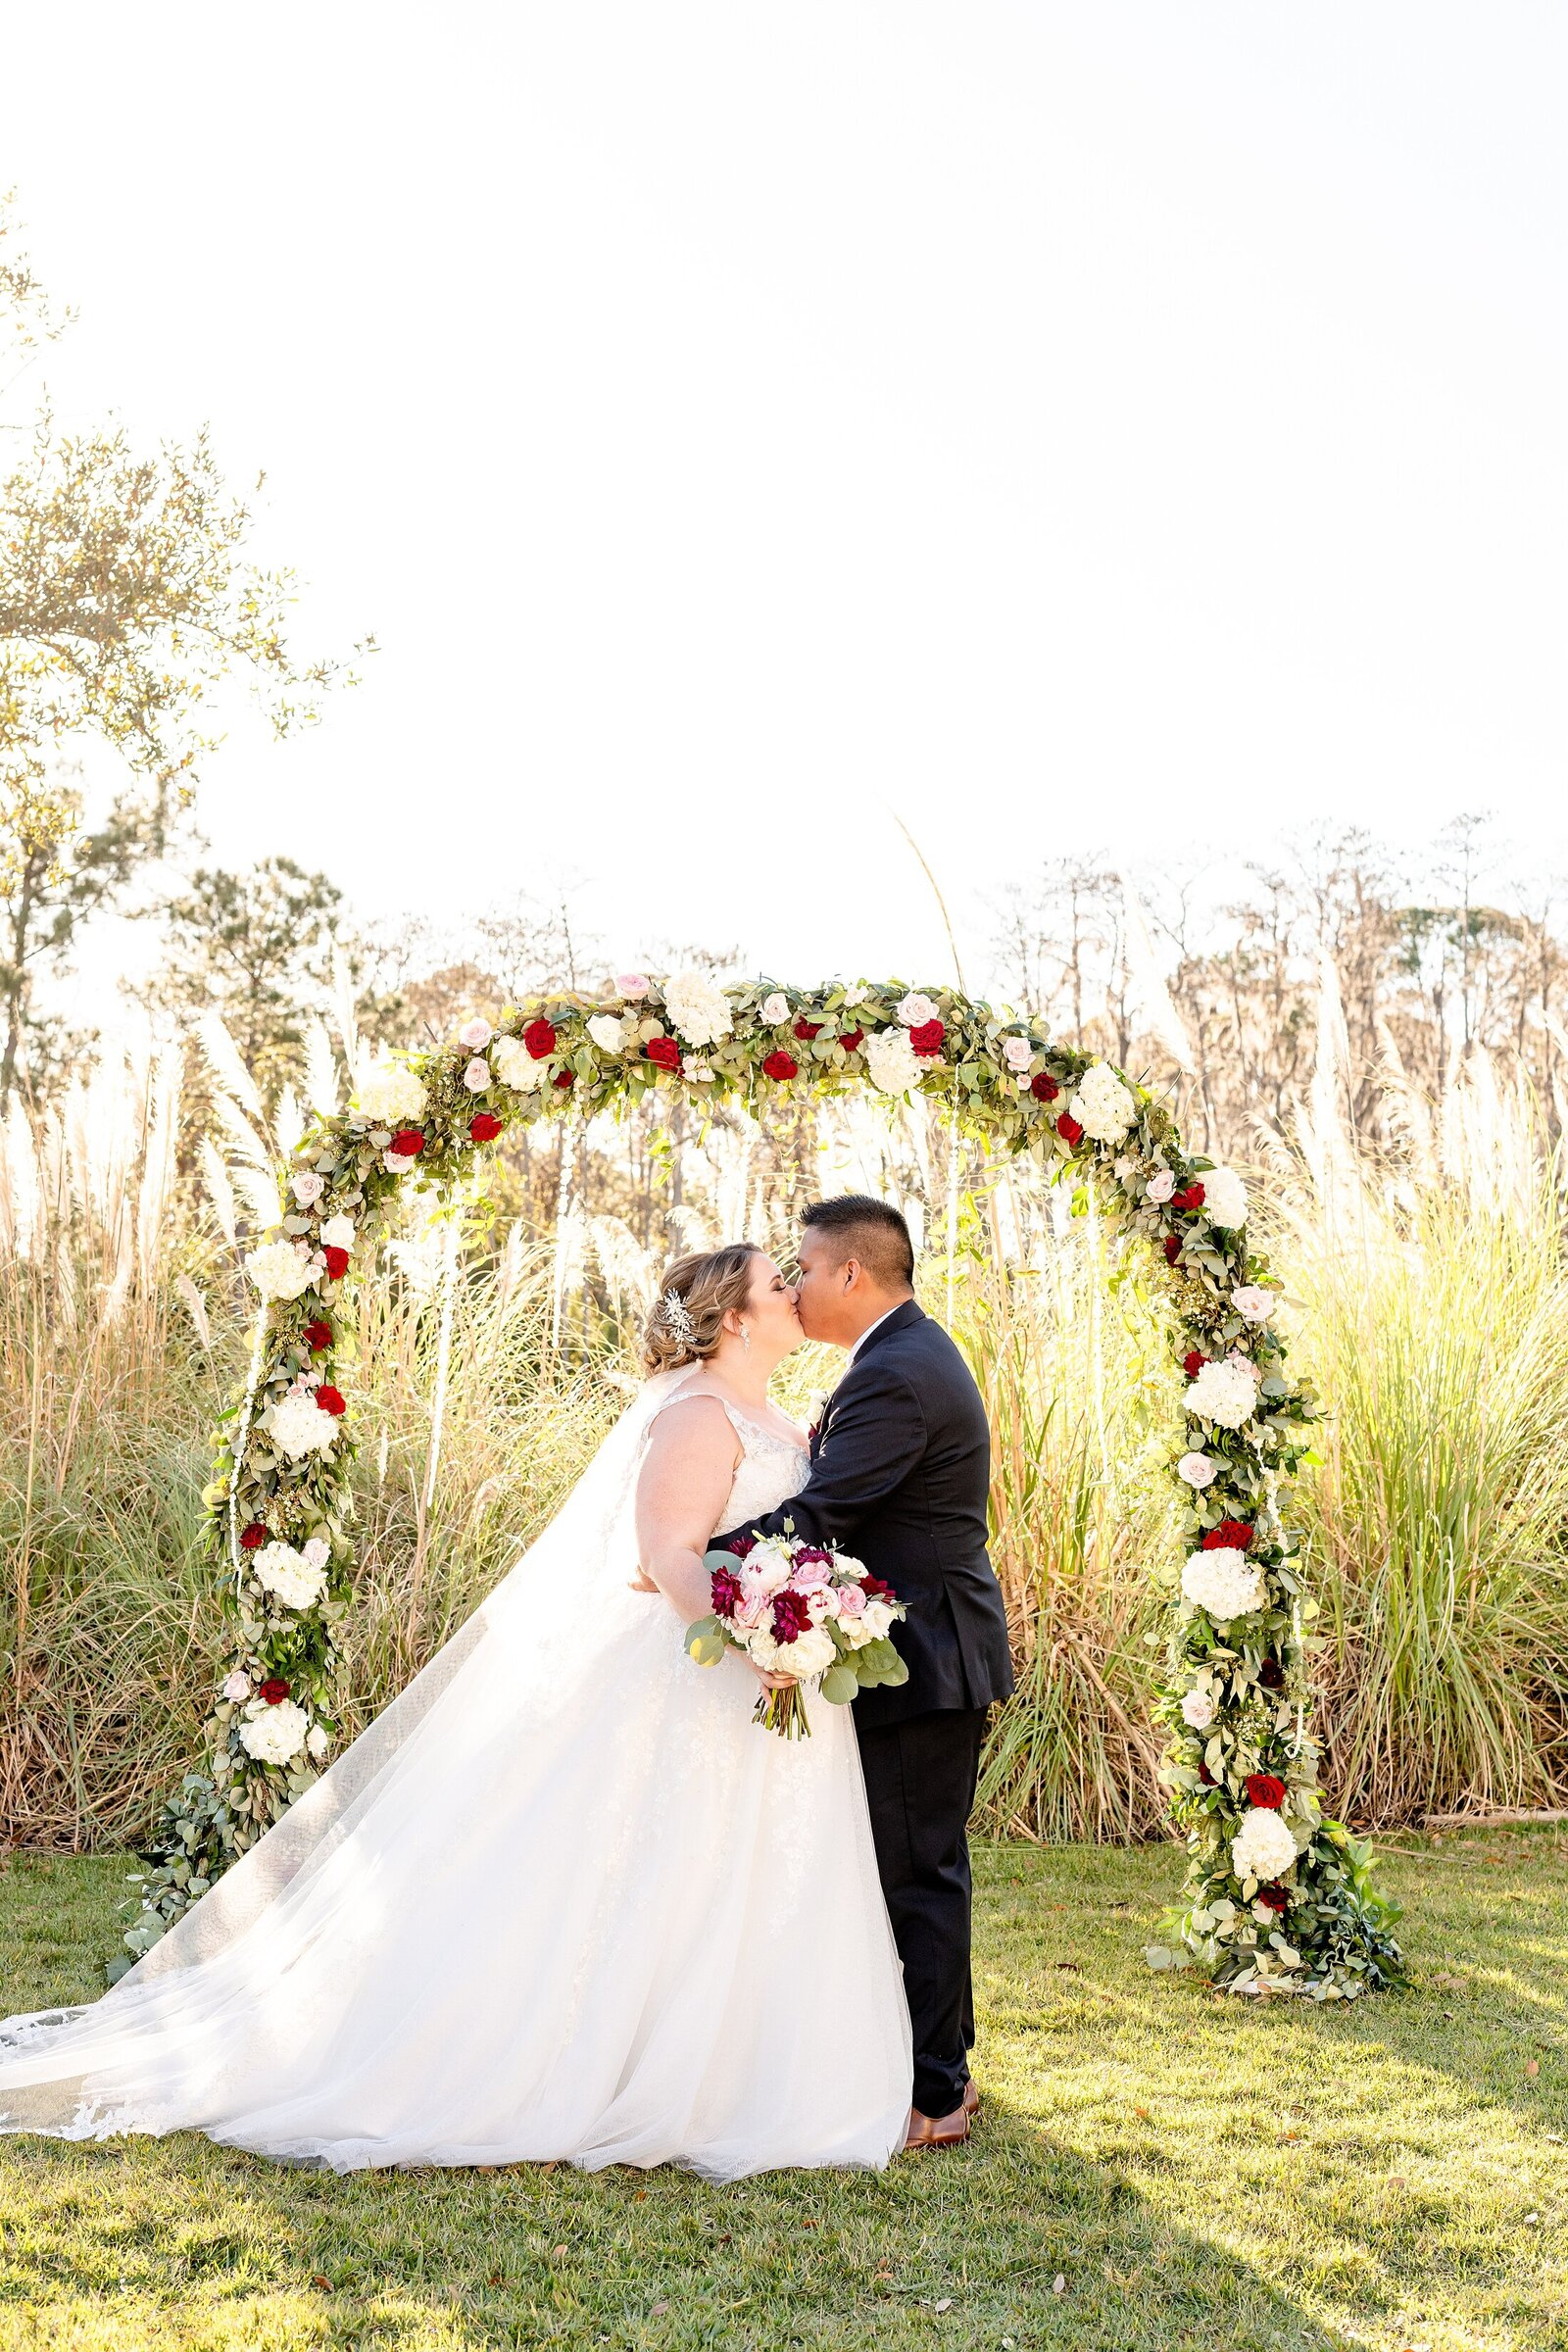 Wedding Floral Arch | Four Seasons Wedding | Chynna Pacheco Photography